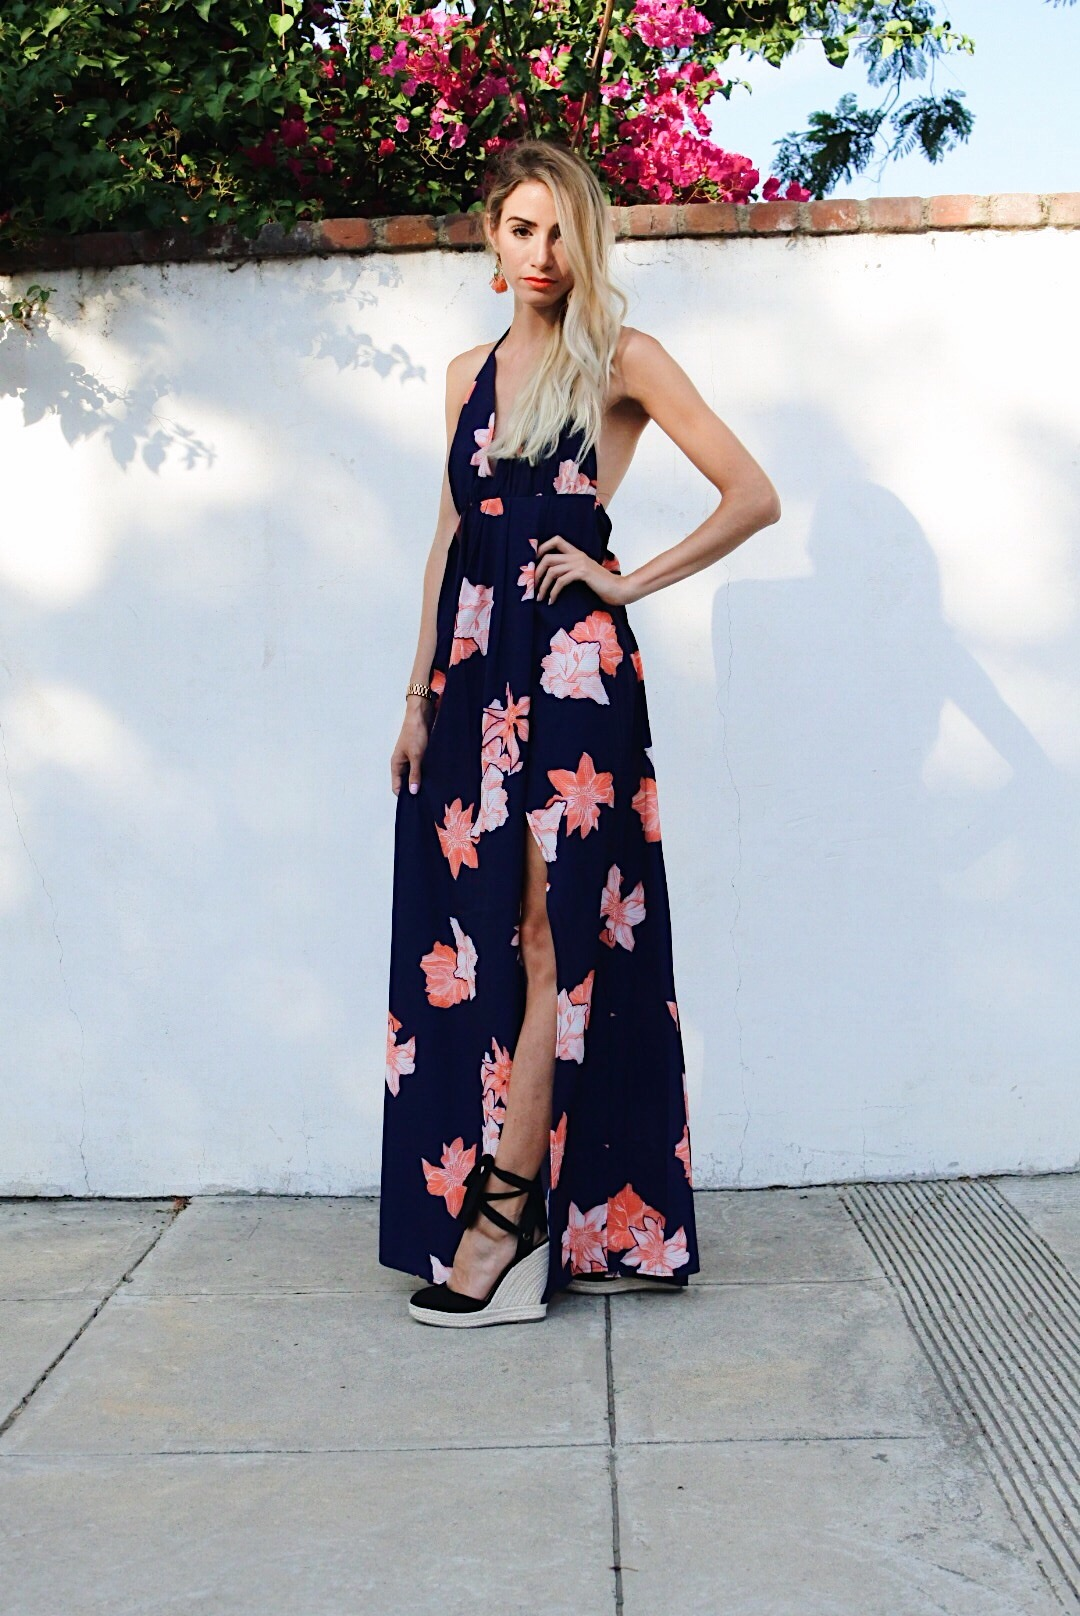 Shop the Mint Maxi Dress